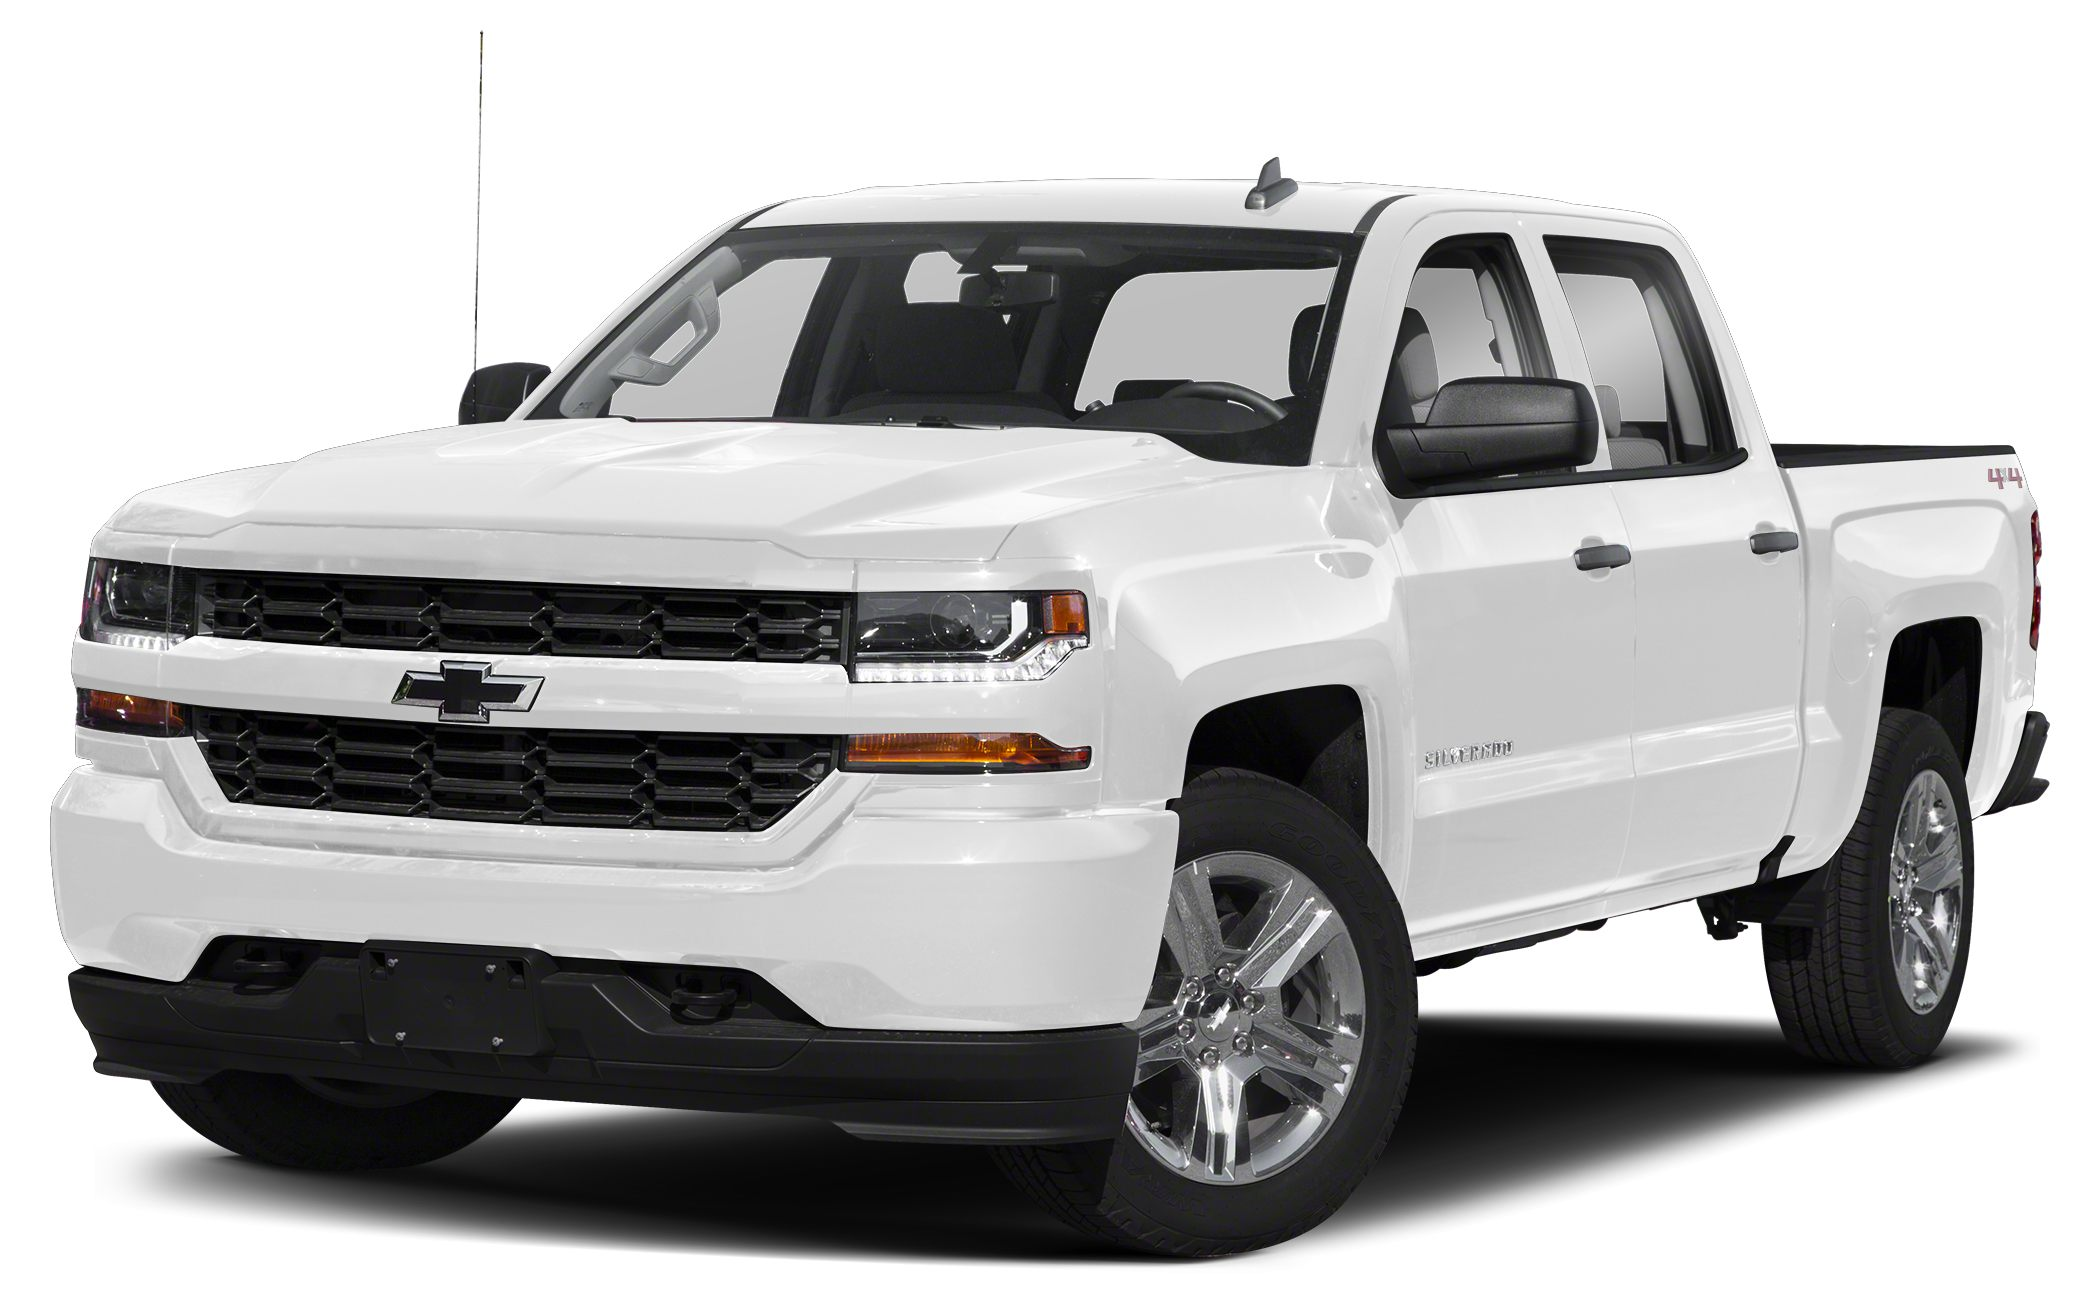 2018 Chevrolet Silverado 1500 Custom CARFAX 1-Owner LOW MILES - 468 FUEL EFFICIENT 24 MPG Hwy18